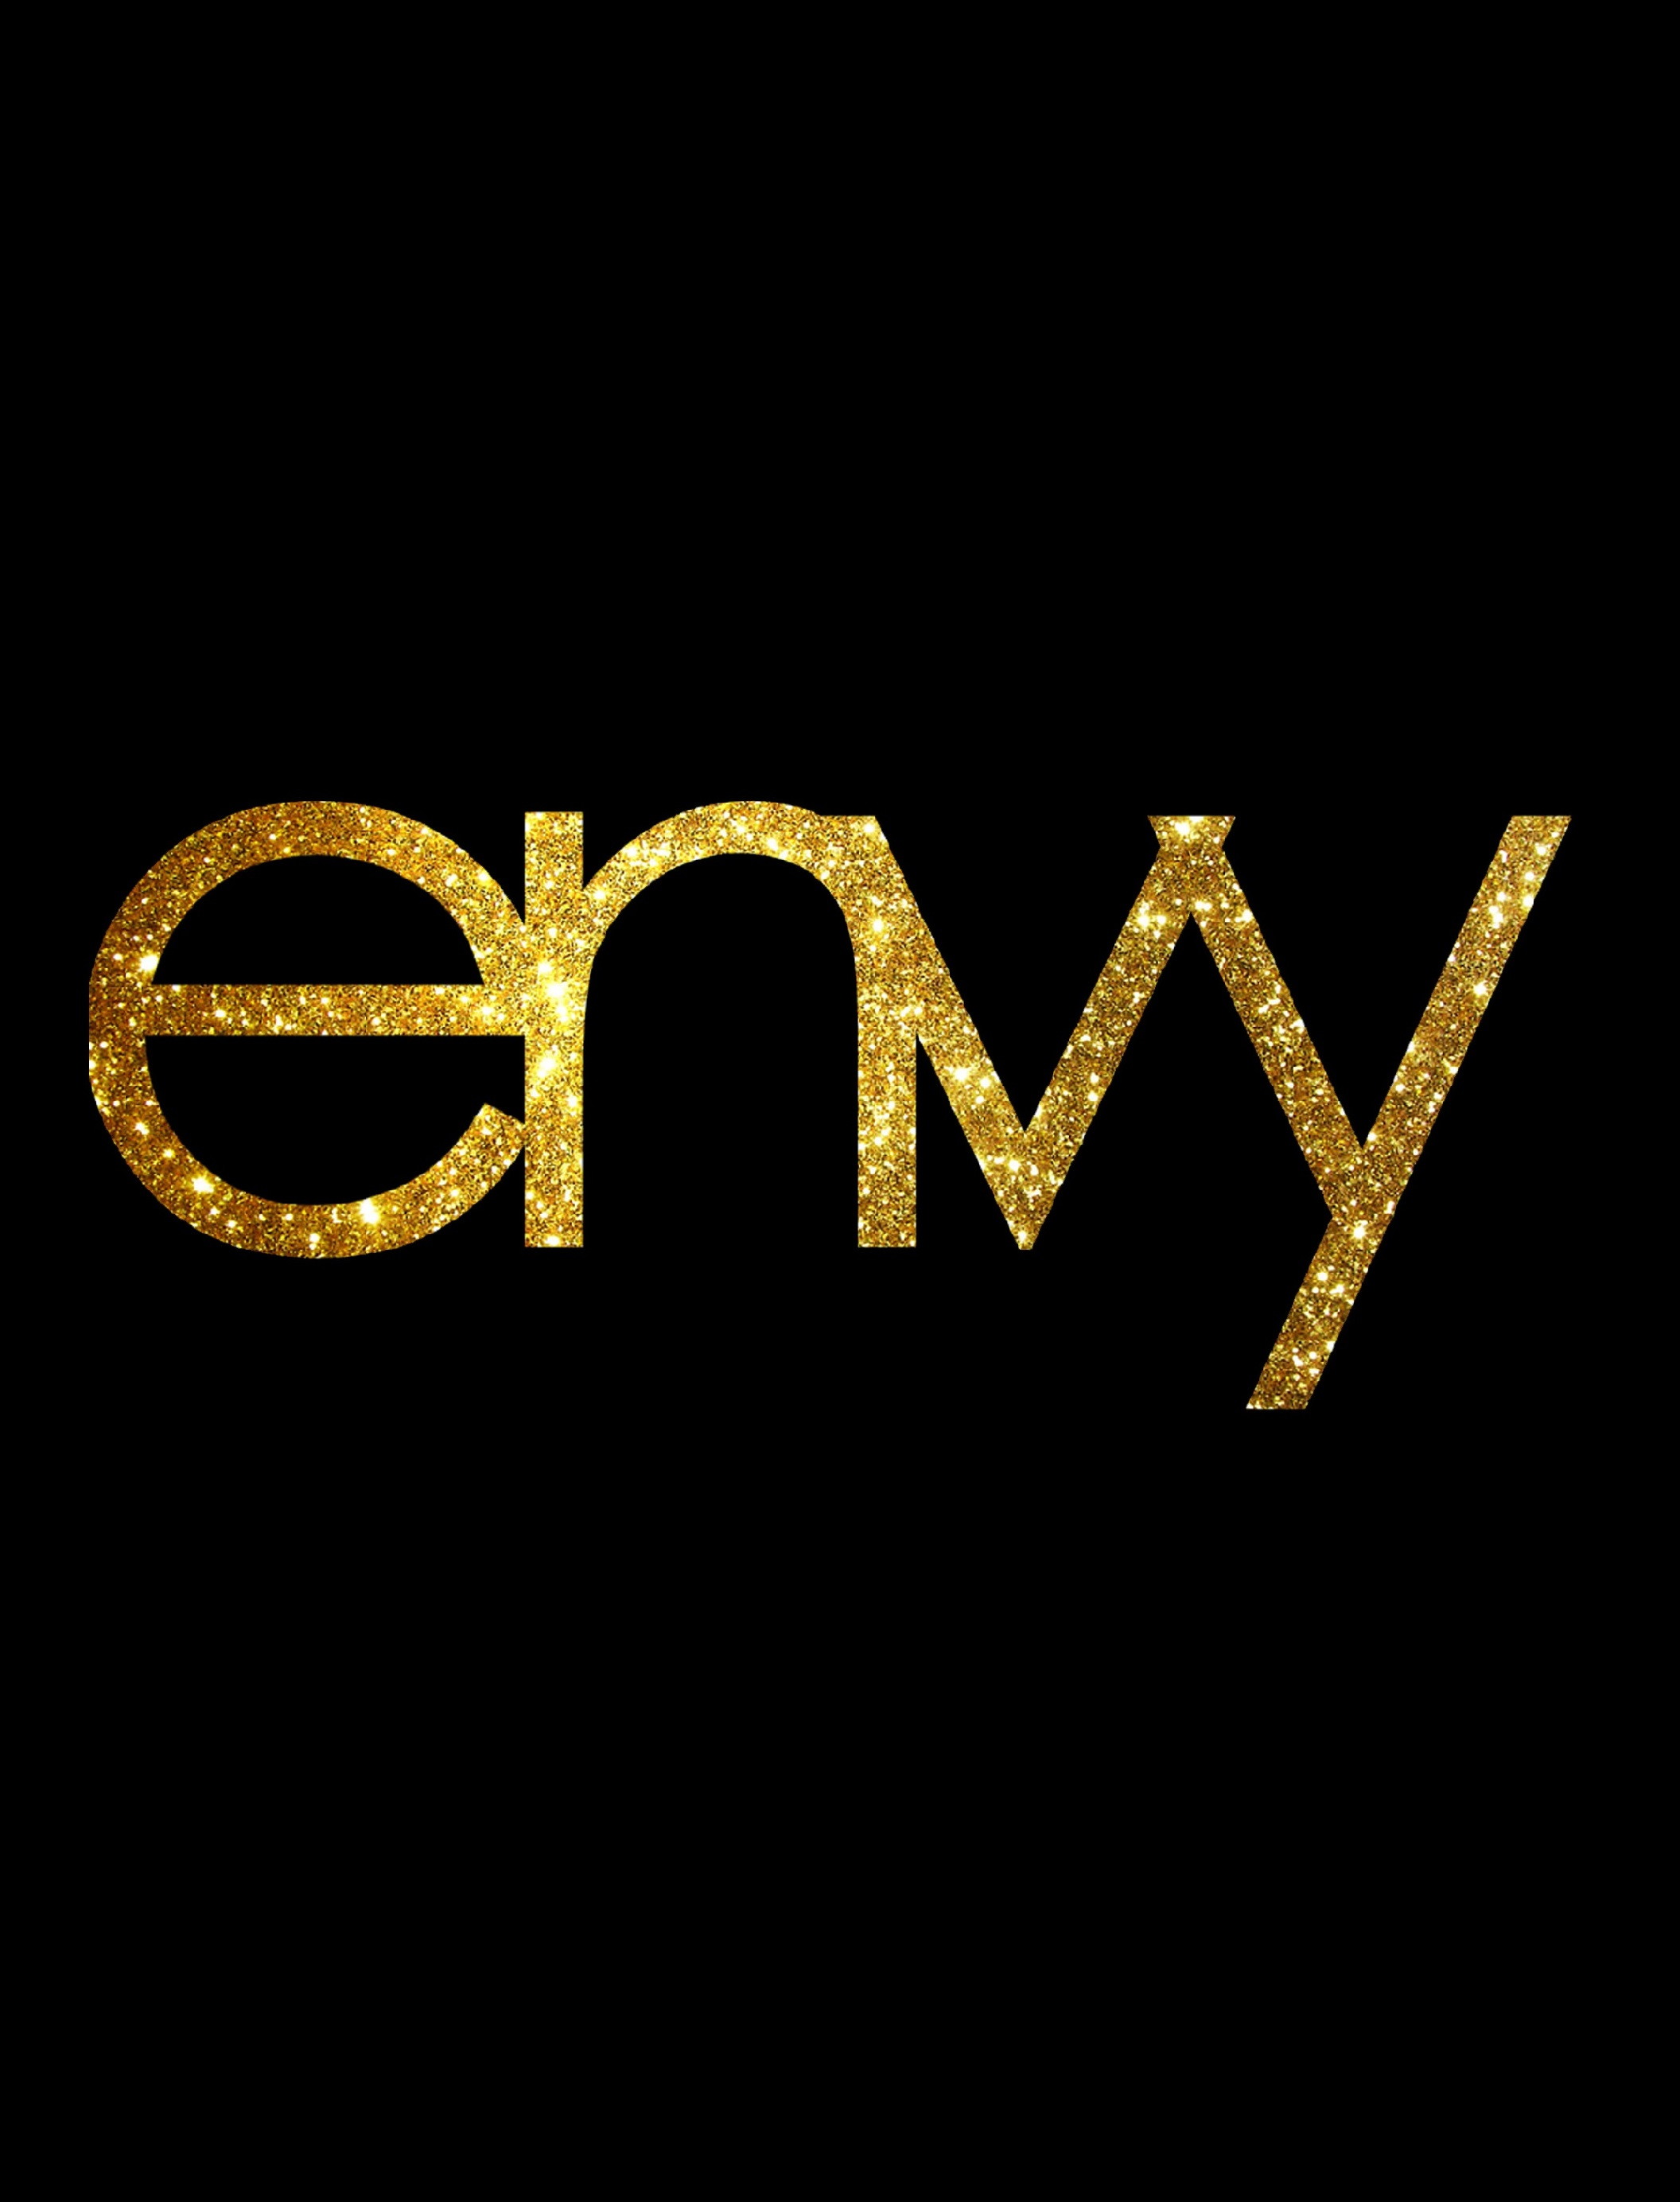 The Envy Agency